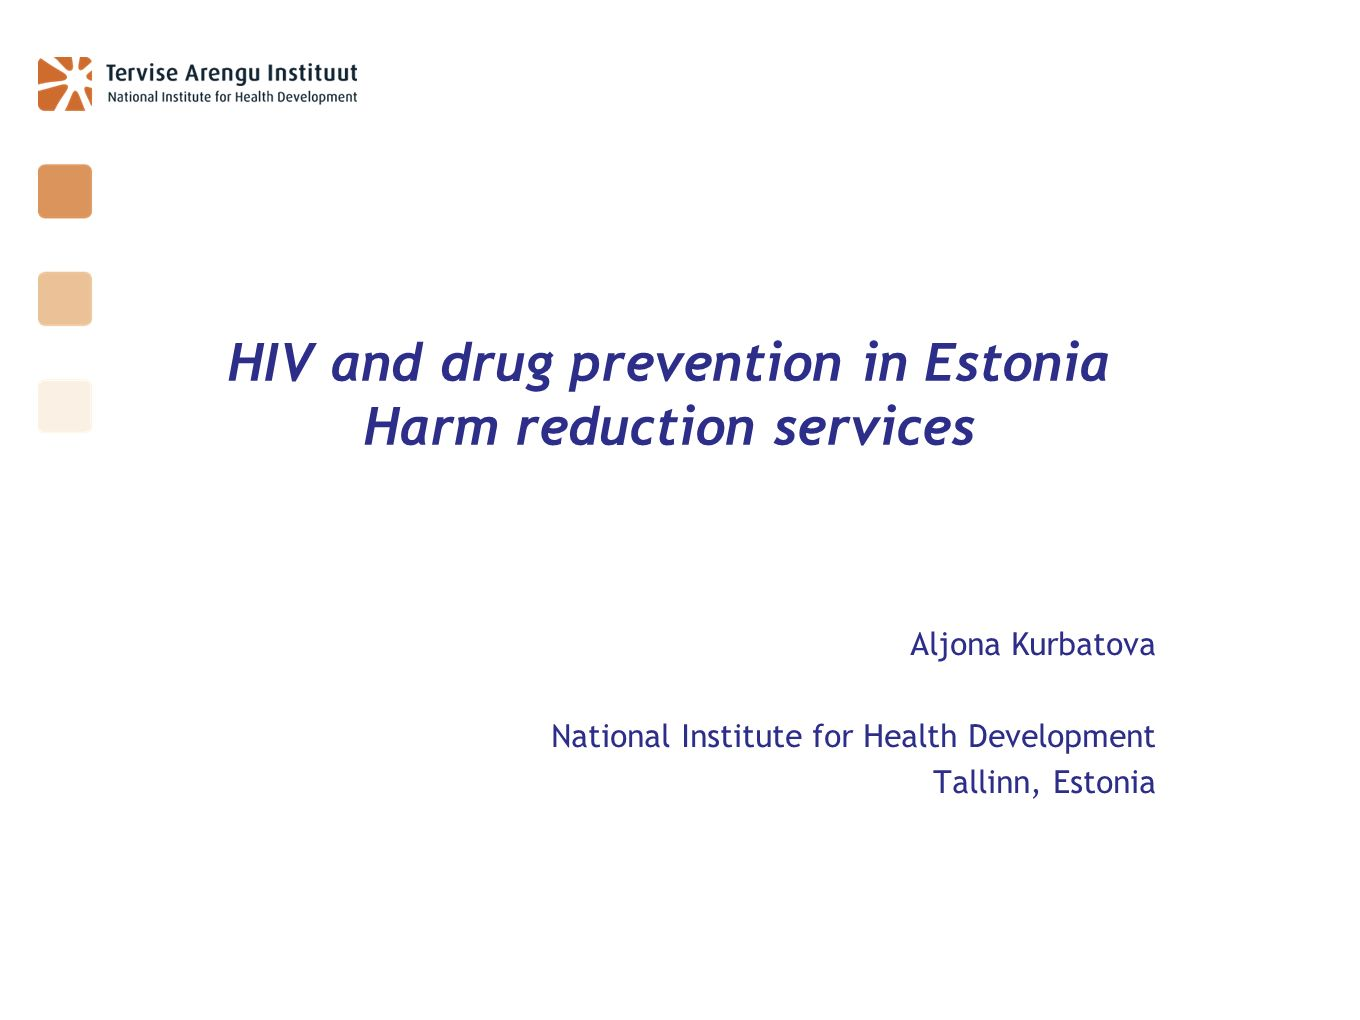 HIV and drug prevention in Estonia Harm reduction services